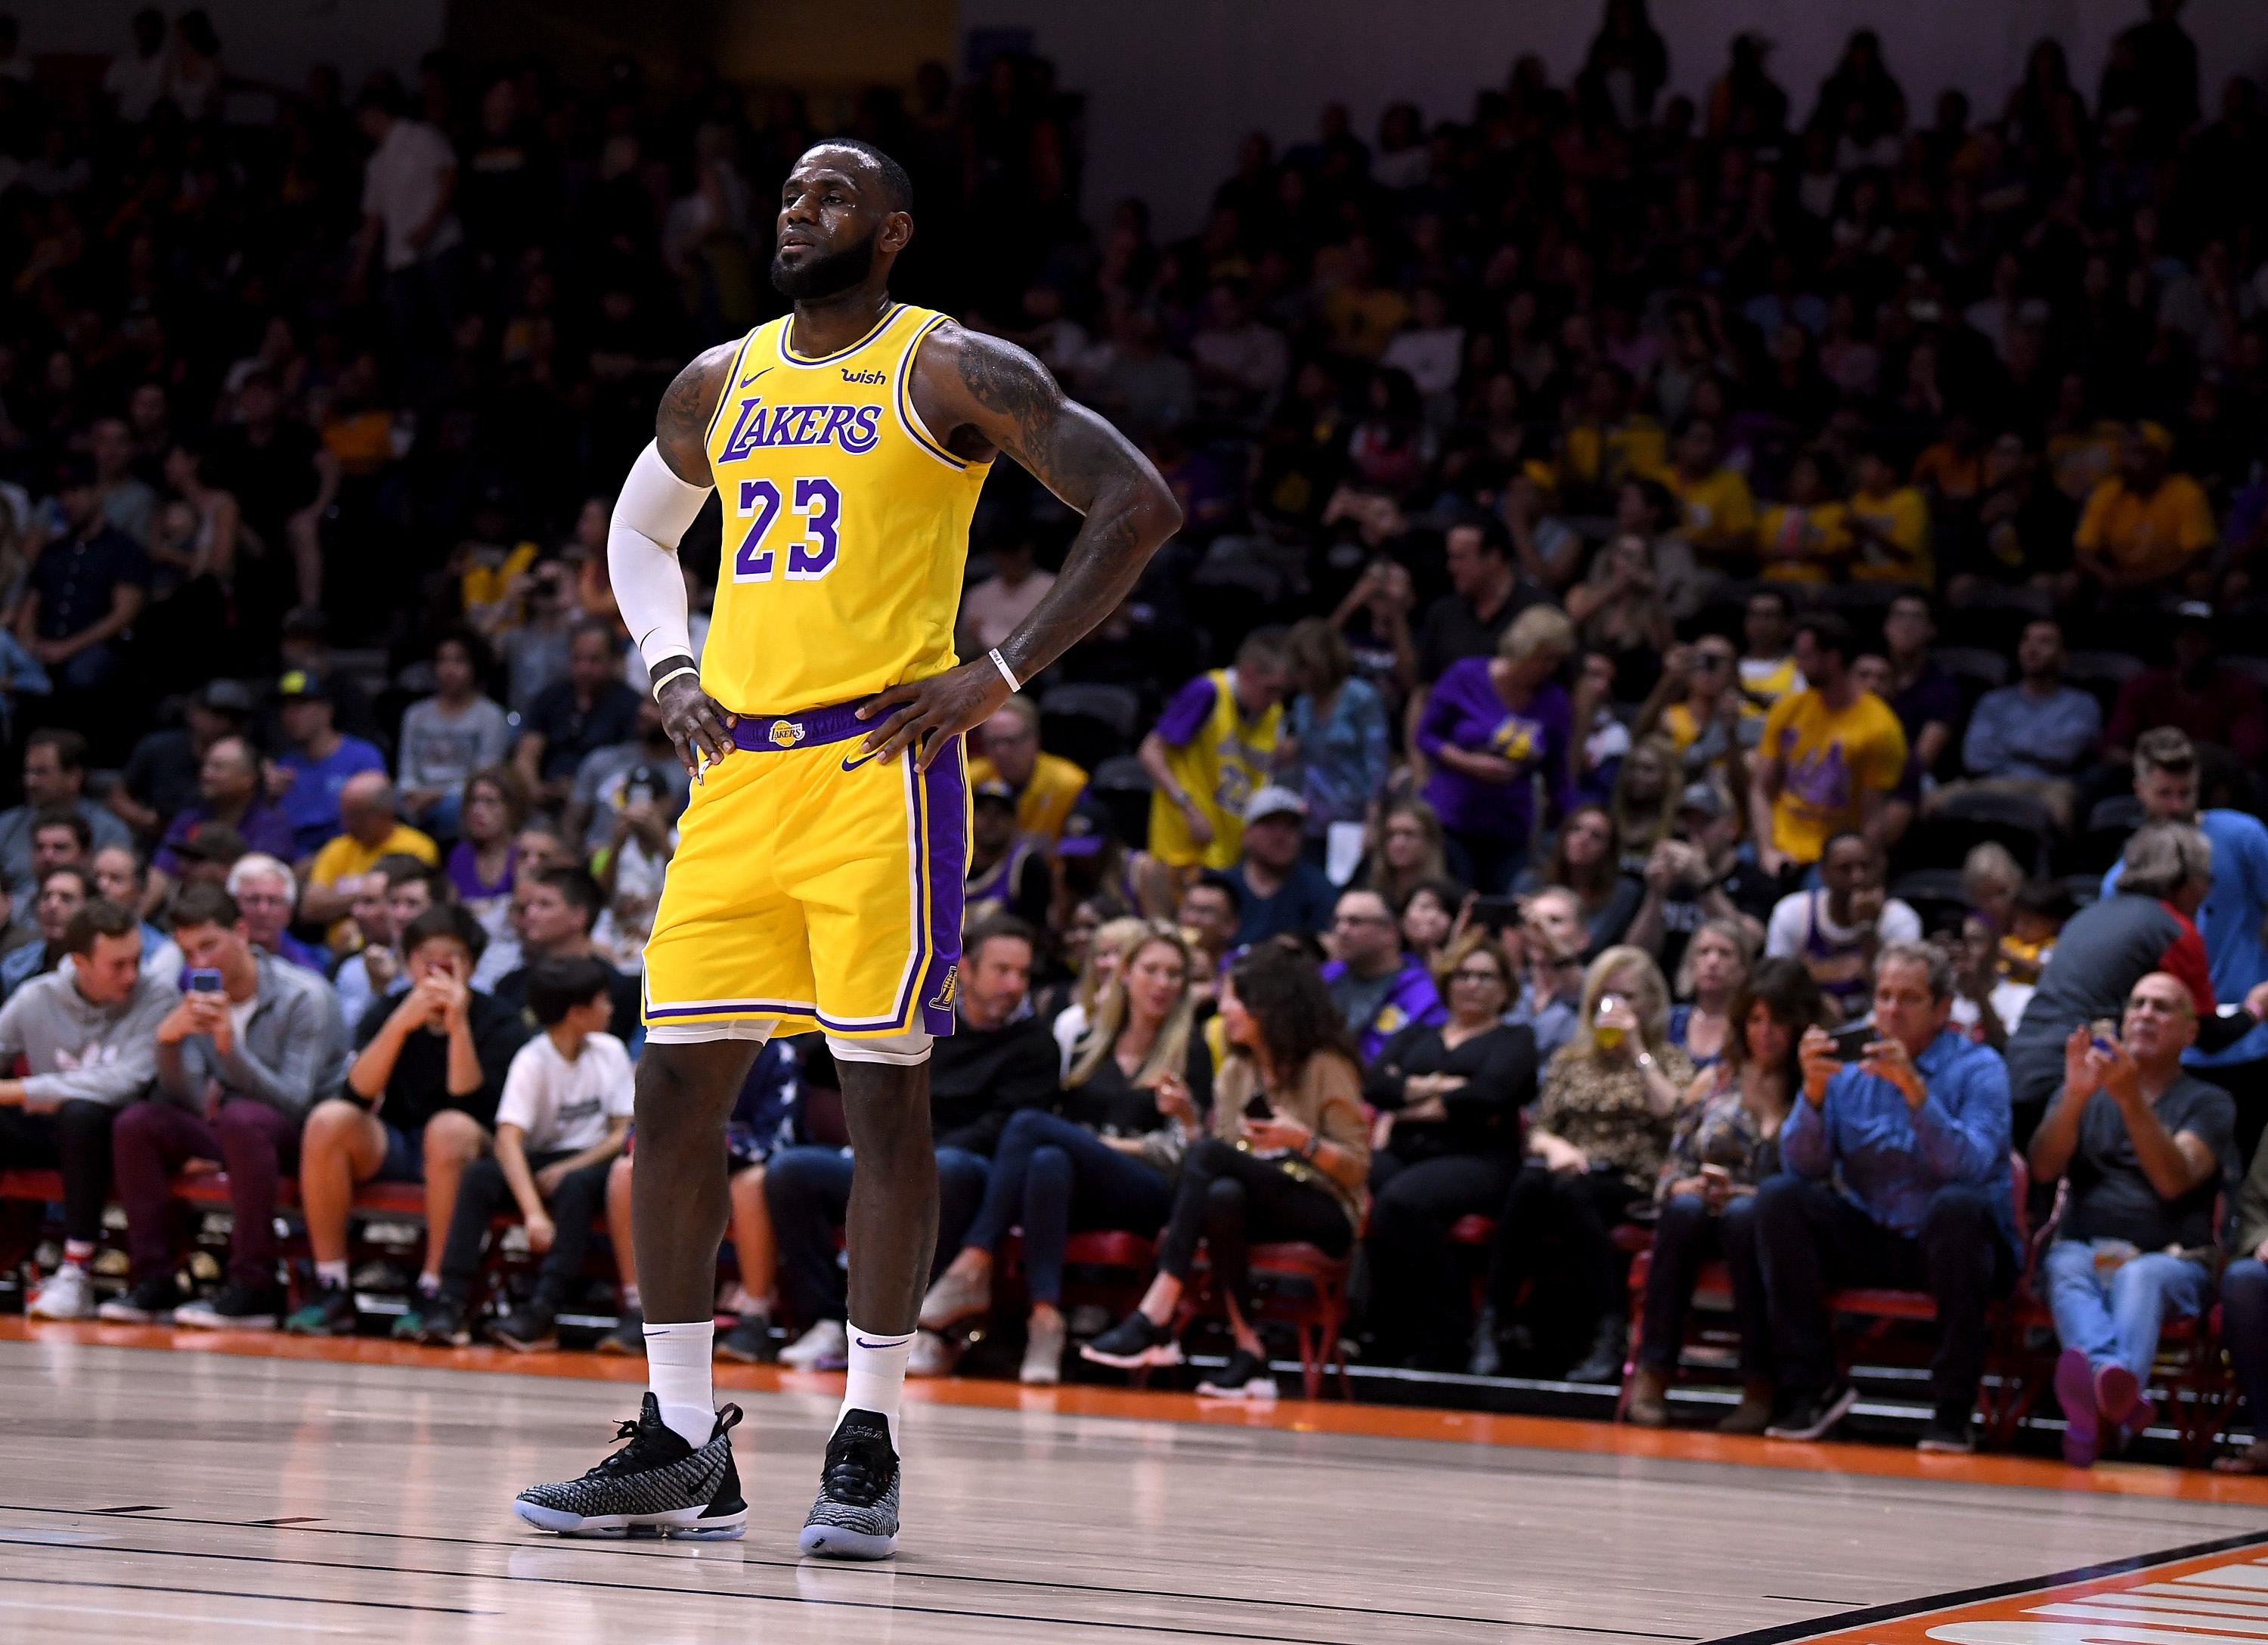 LeBron James in his first preseason game for the Los Angeles Lakers, against the Denver Nuggets at Valley View Casino Center in San Diego.